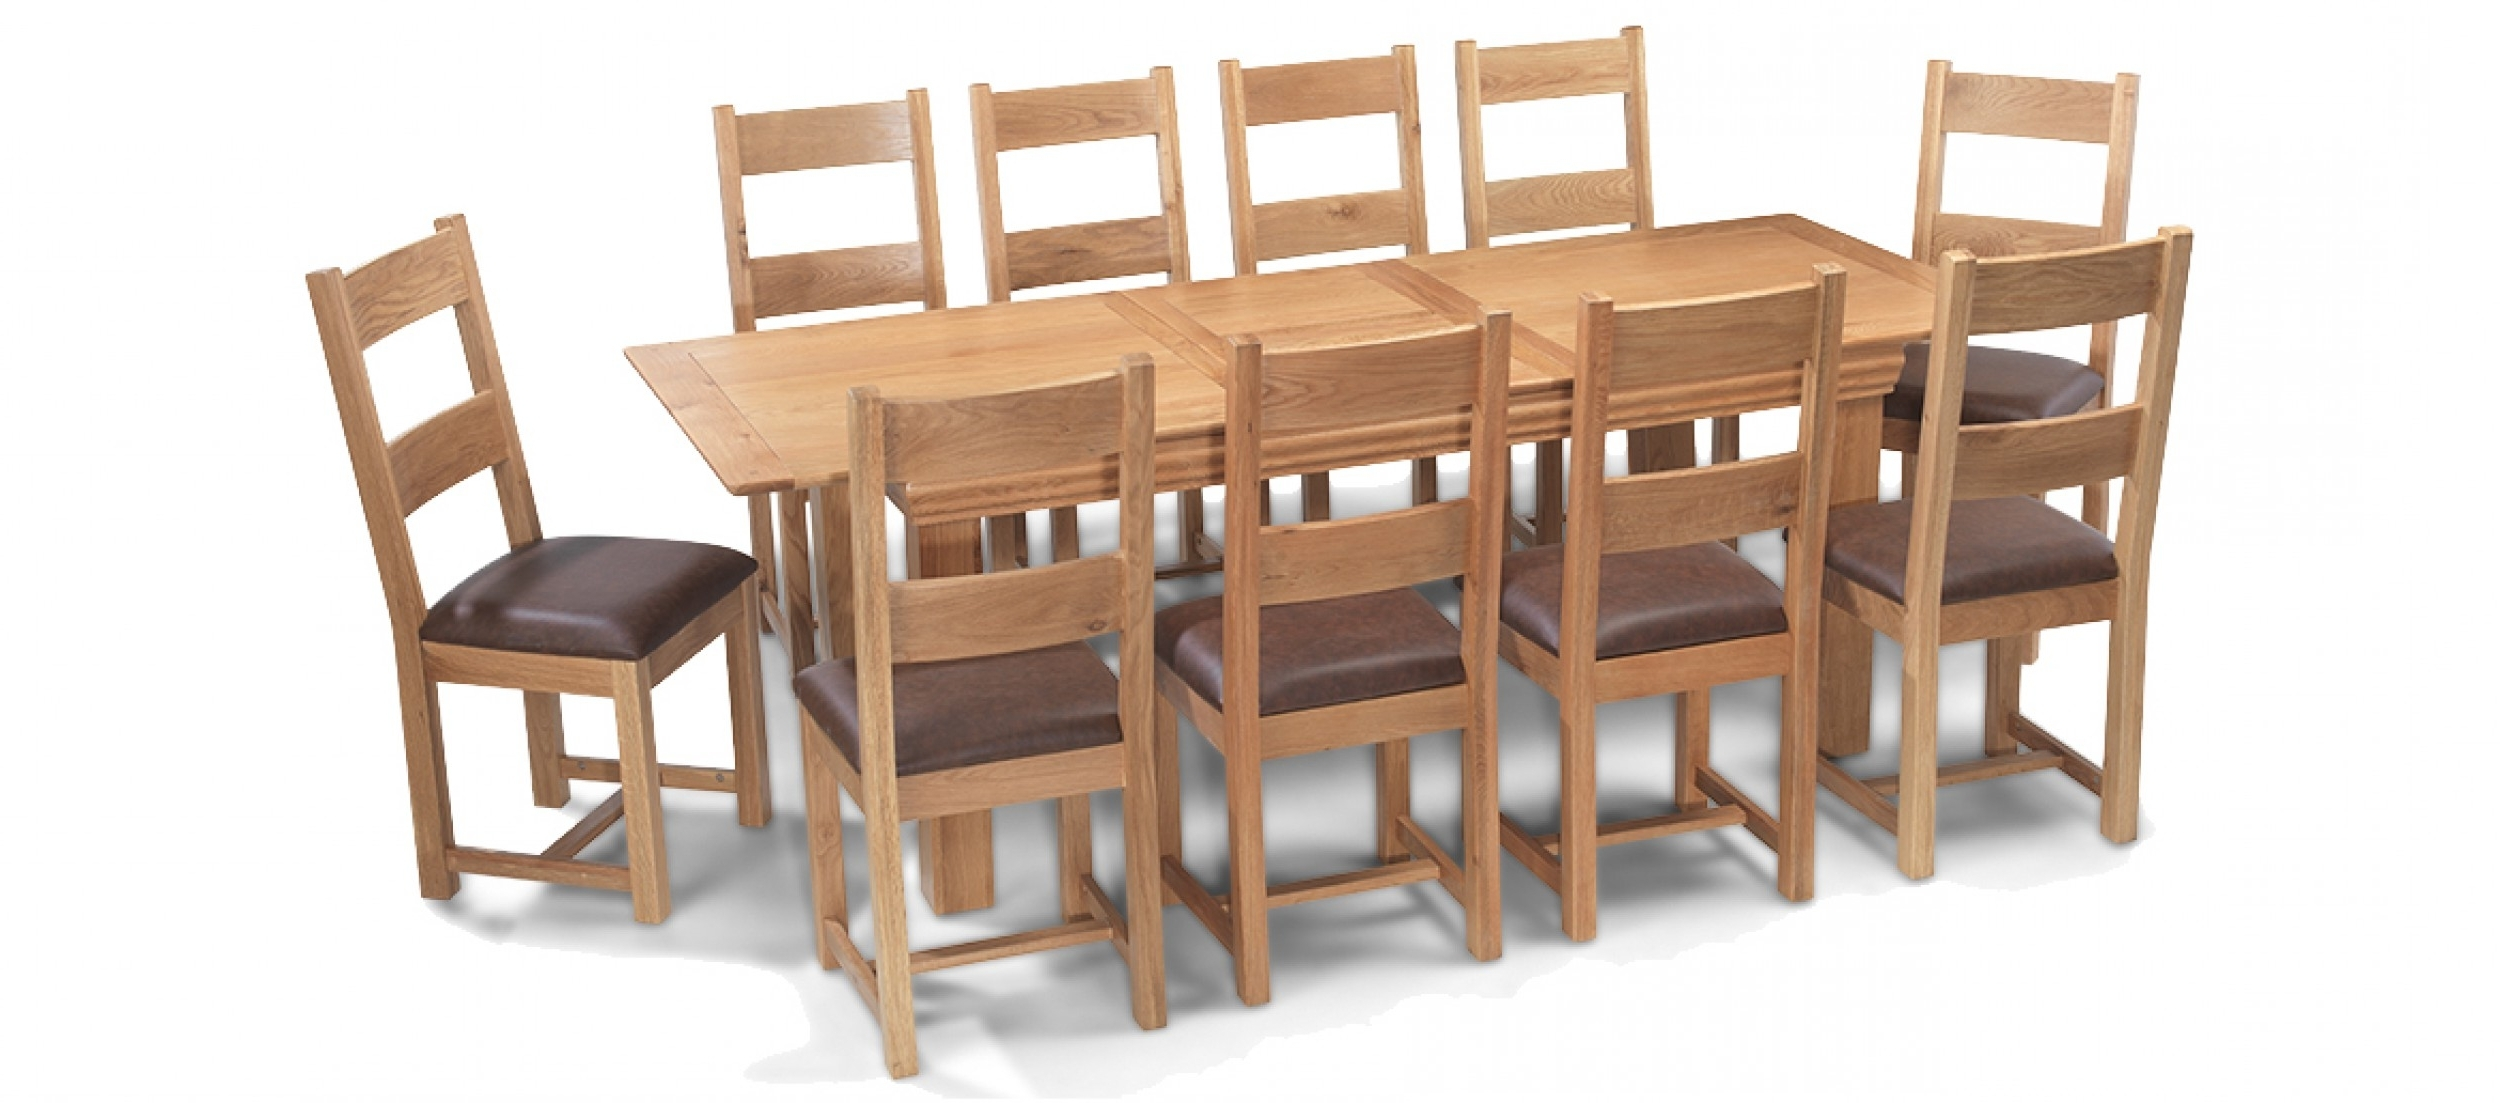 Constance Oak 180 230 Cm Extending Dining Table And 10 Chairs For Well Known Extending Dining Tables Set (View 4 of 25)